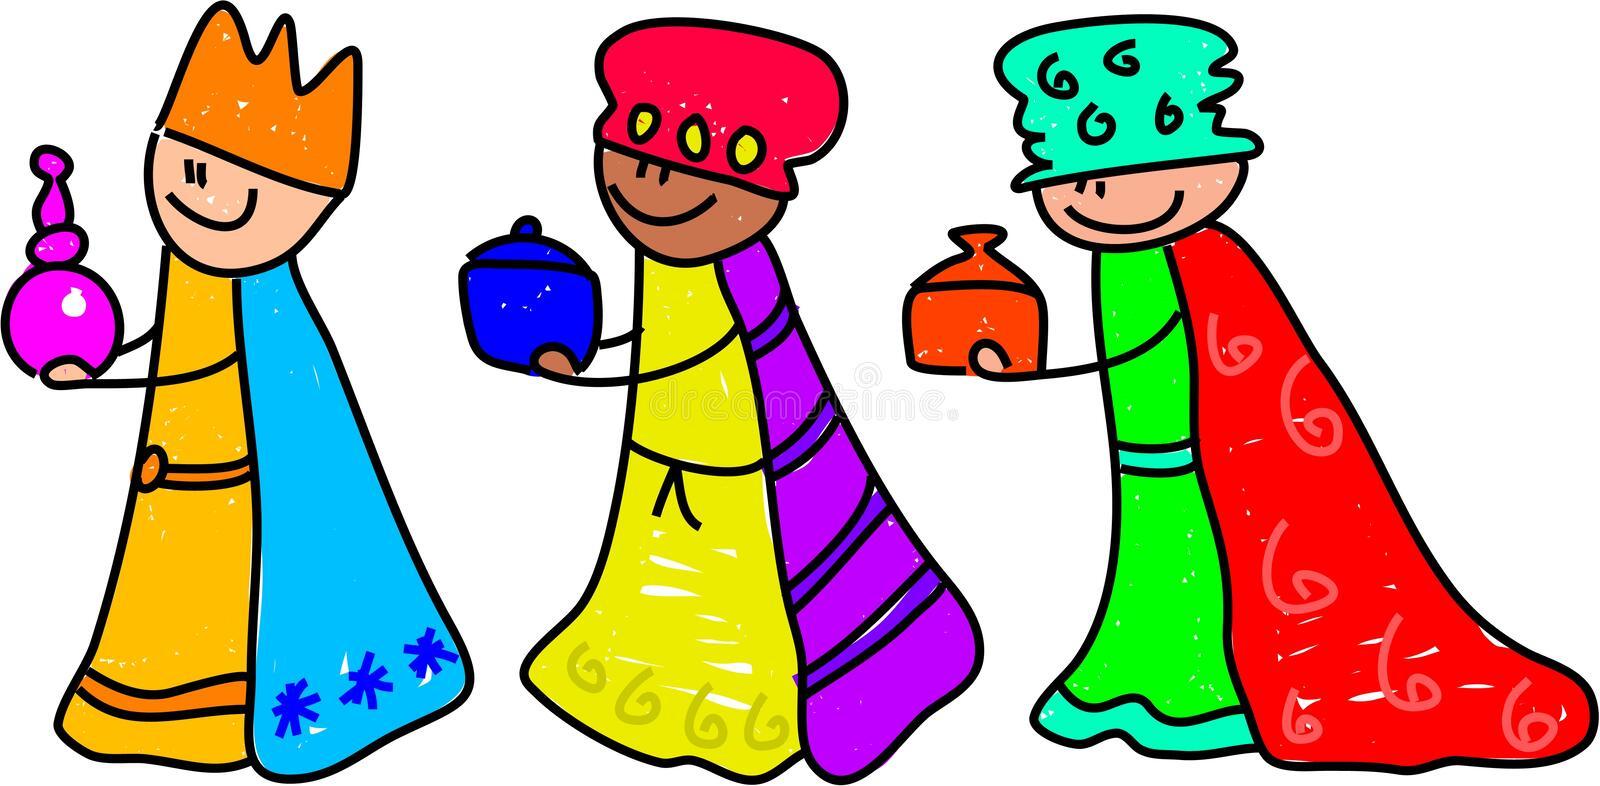 Magi kids. Happy little kids dressed up as the three kings for the Christmas nativity play - toddler art series